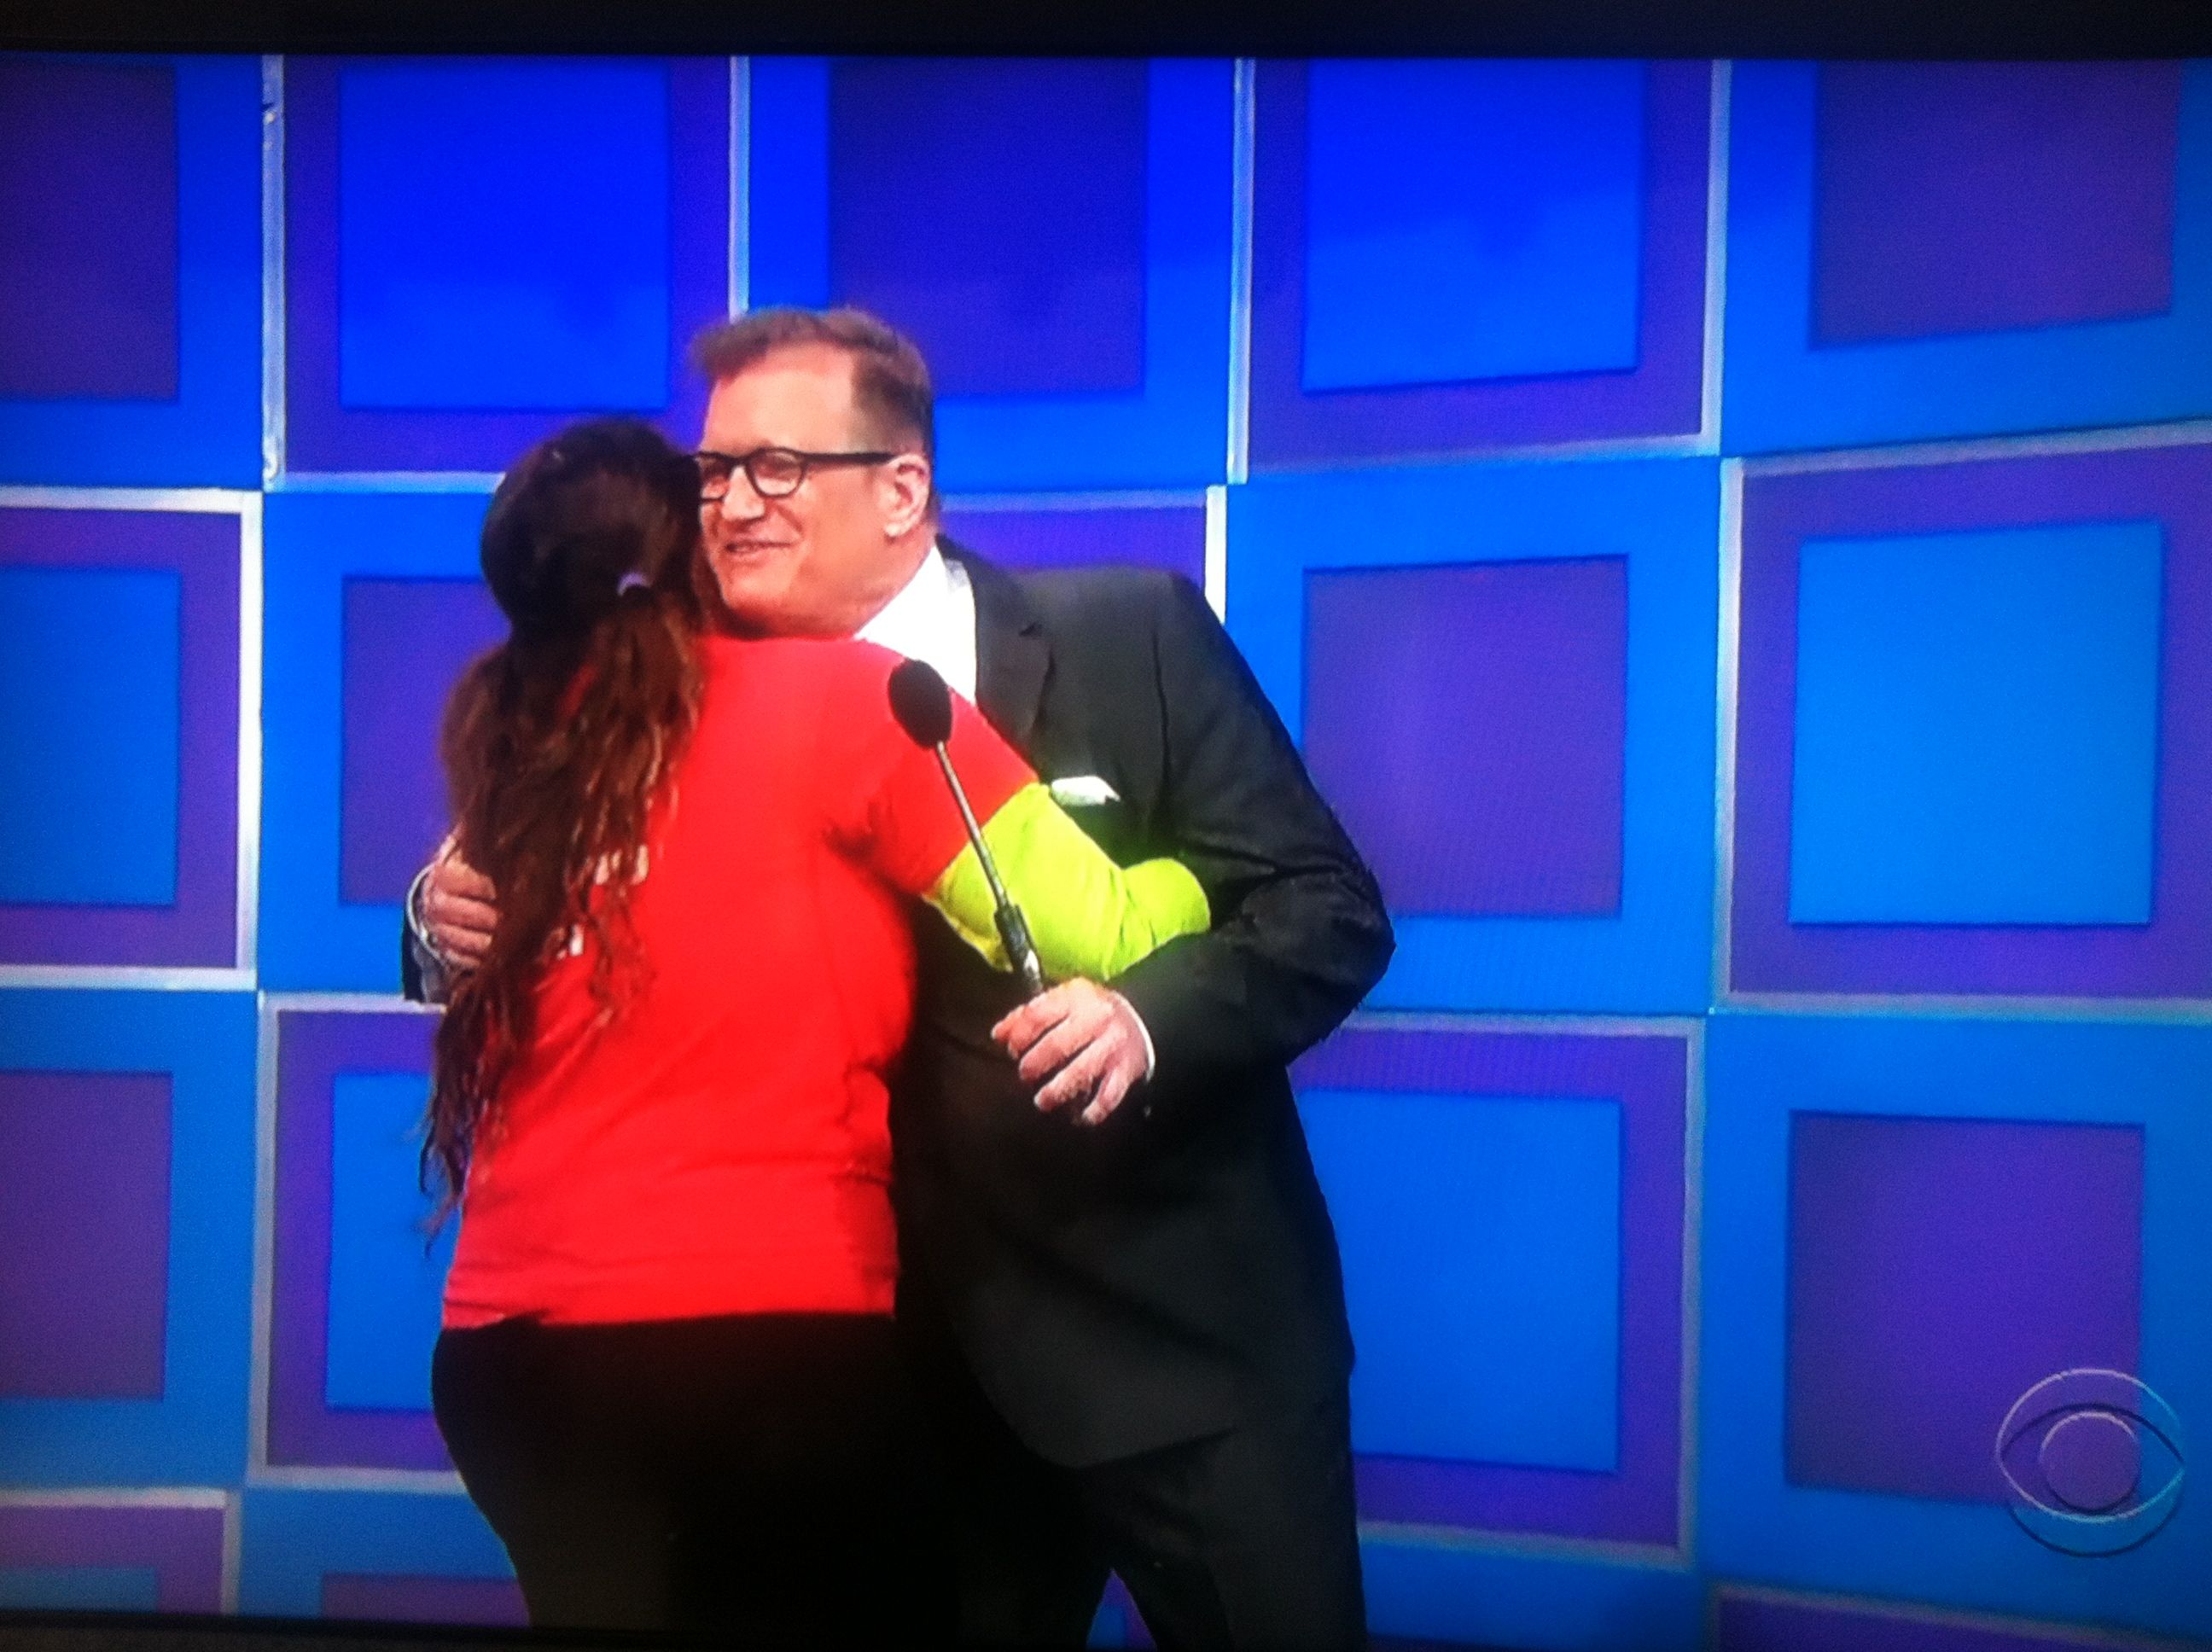 Aurora De Lucia hugging Drew Carey on The Price is Right stage